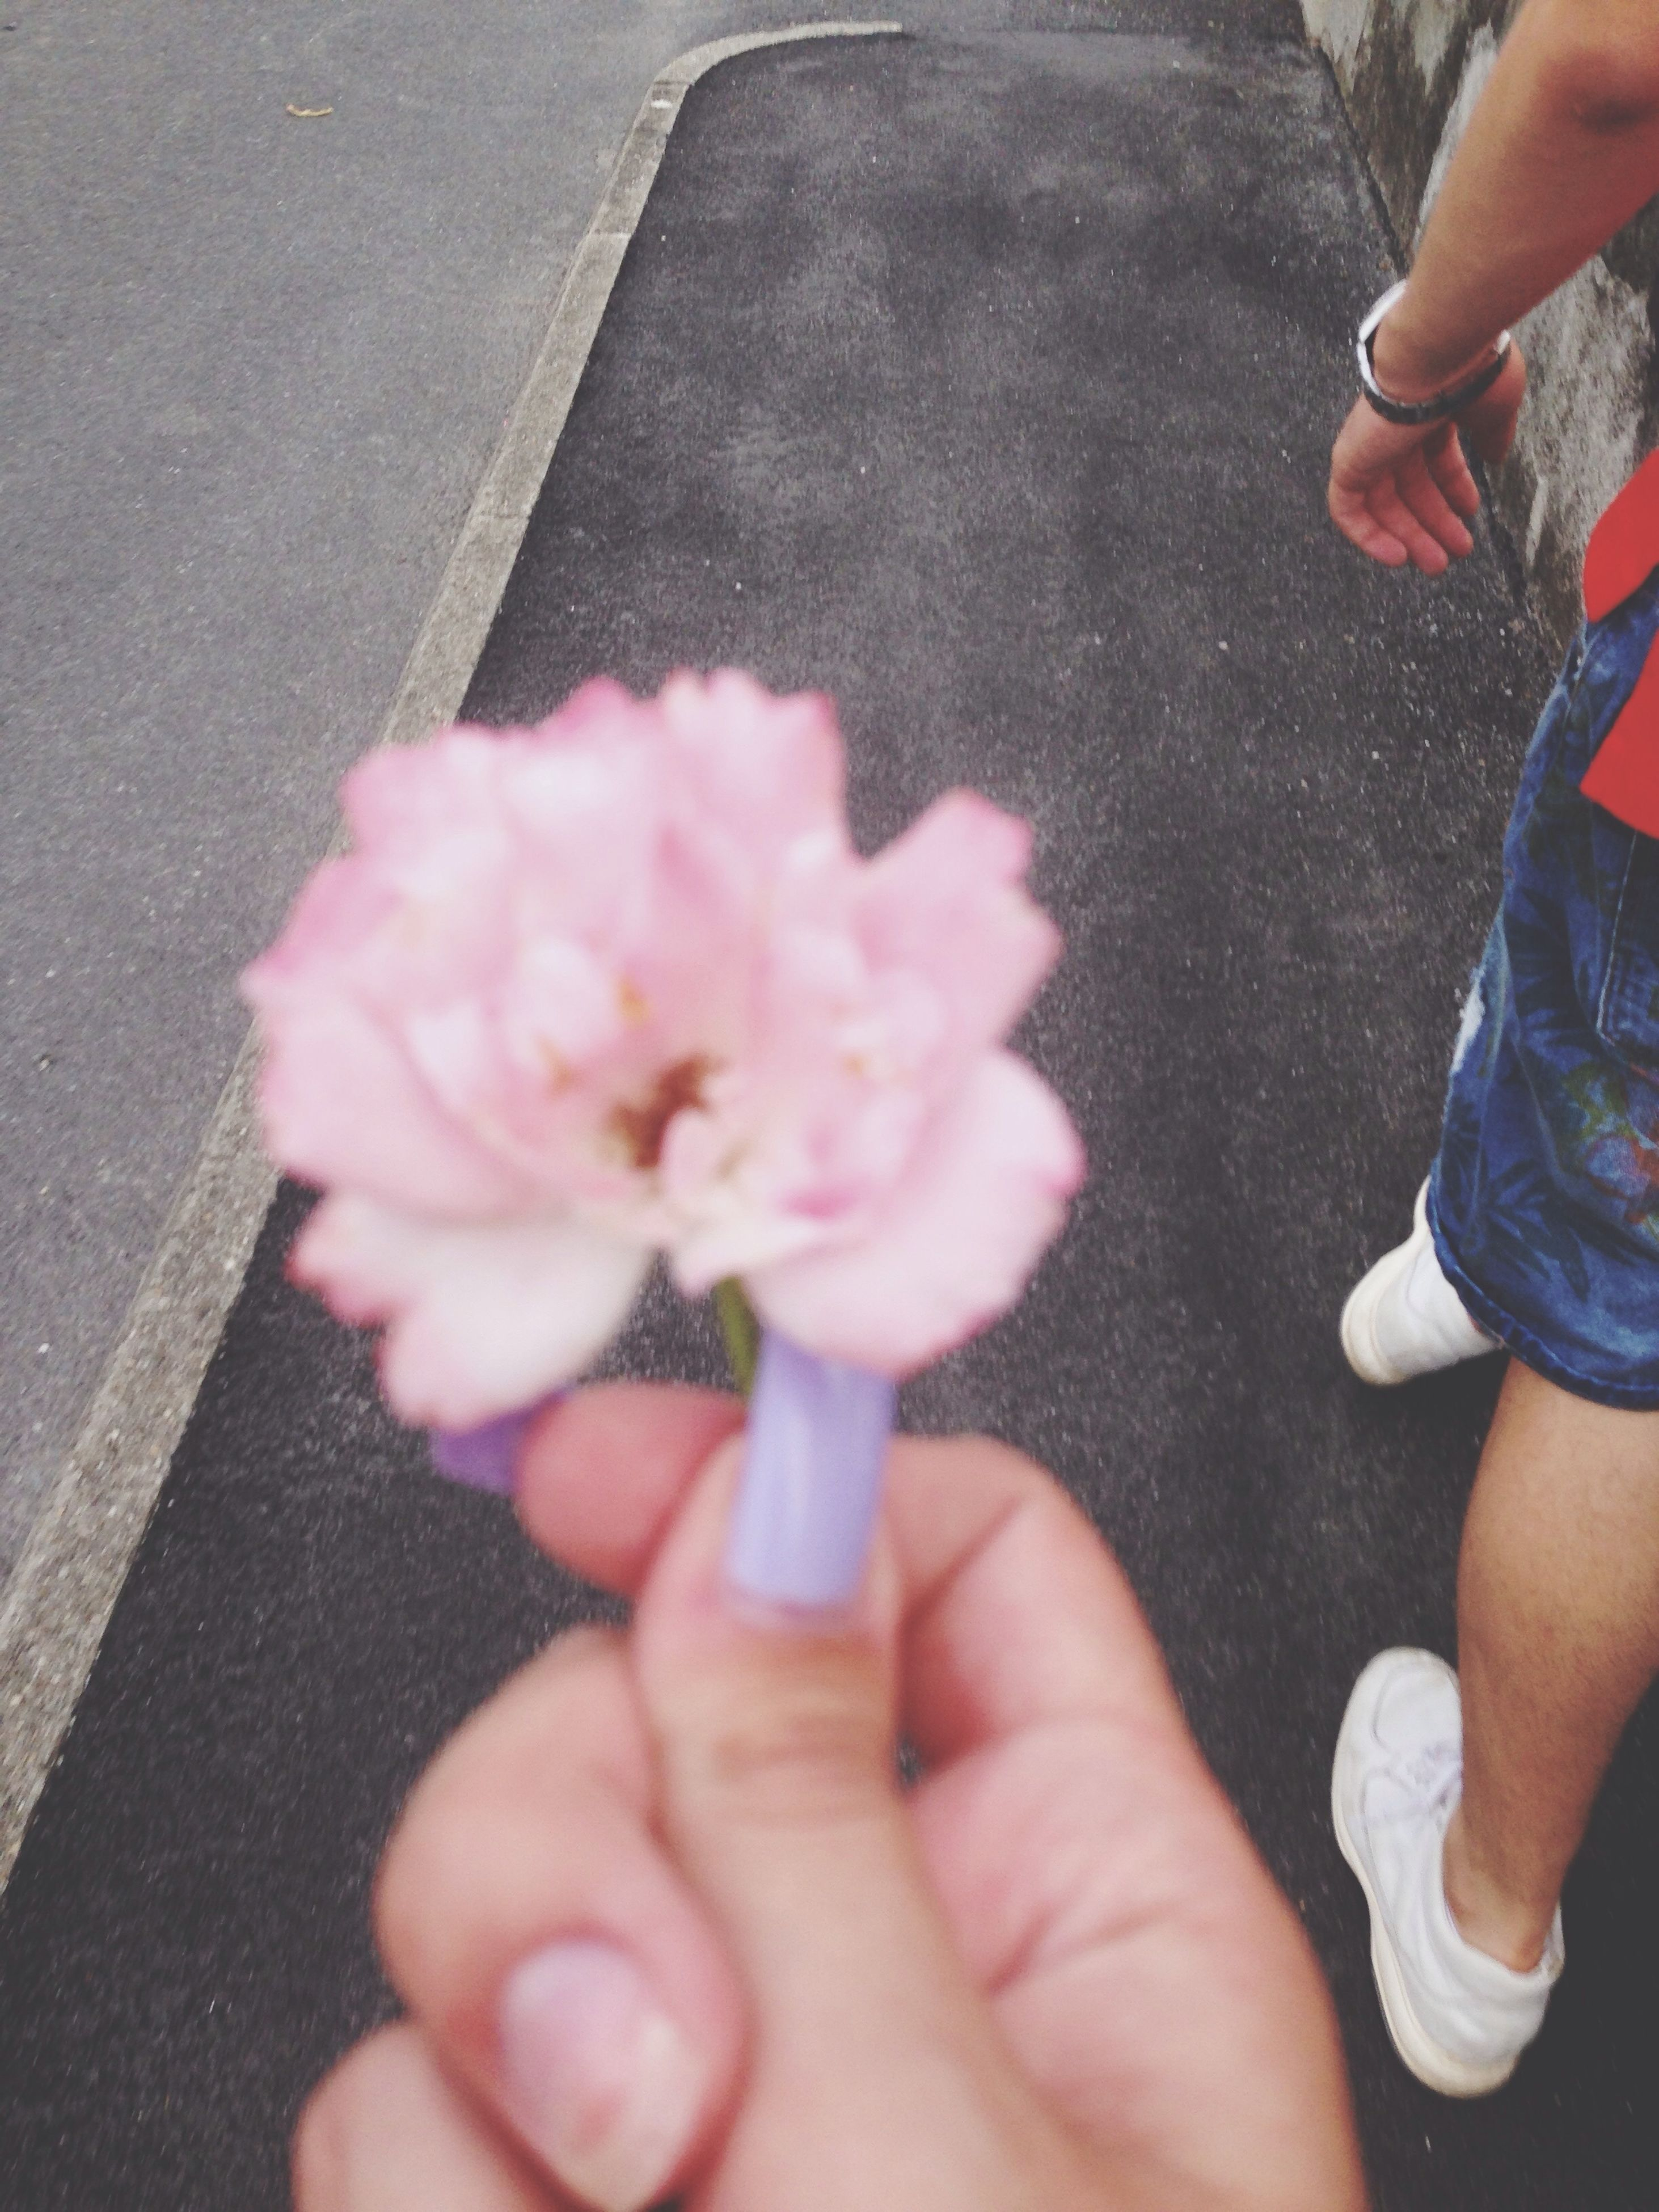 person, holding, part of, flower, freshness, cropped, personal perspective, unrecognizable person, lifestyles, leisure activity, human finger, street, fragility, men, petal, high angle view